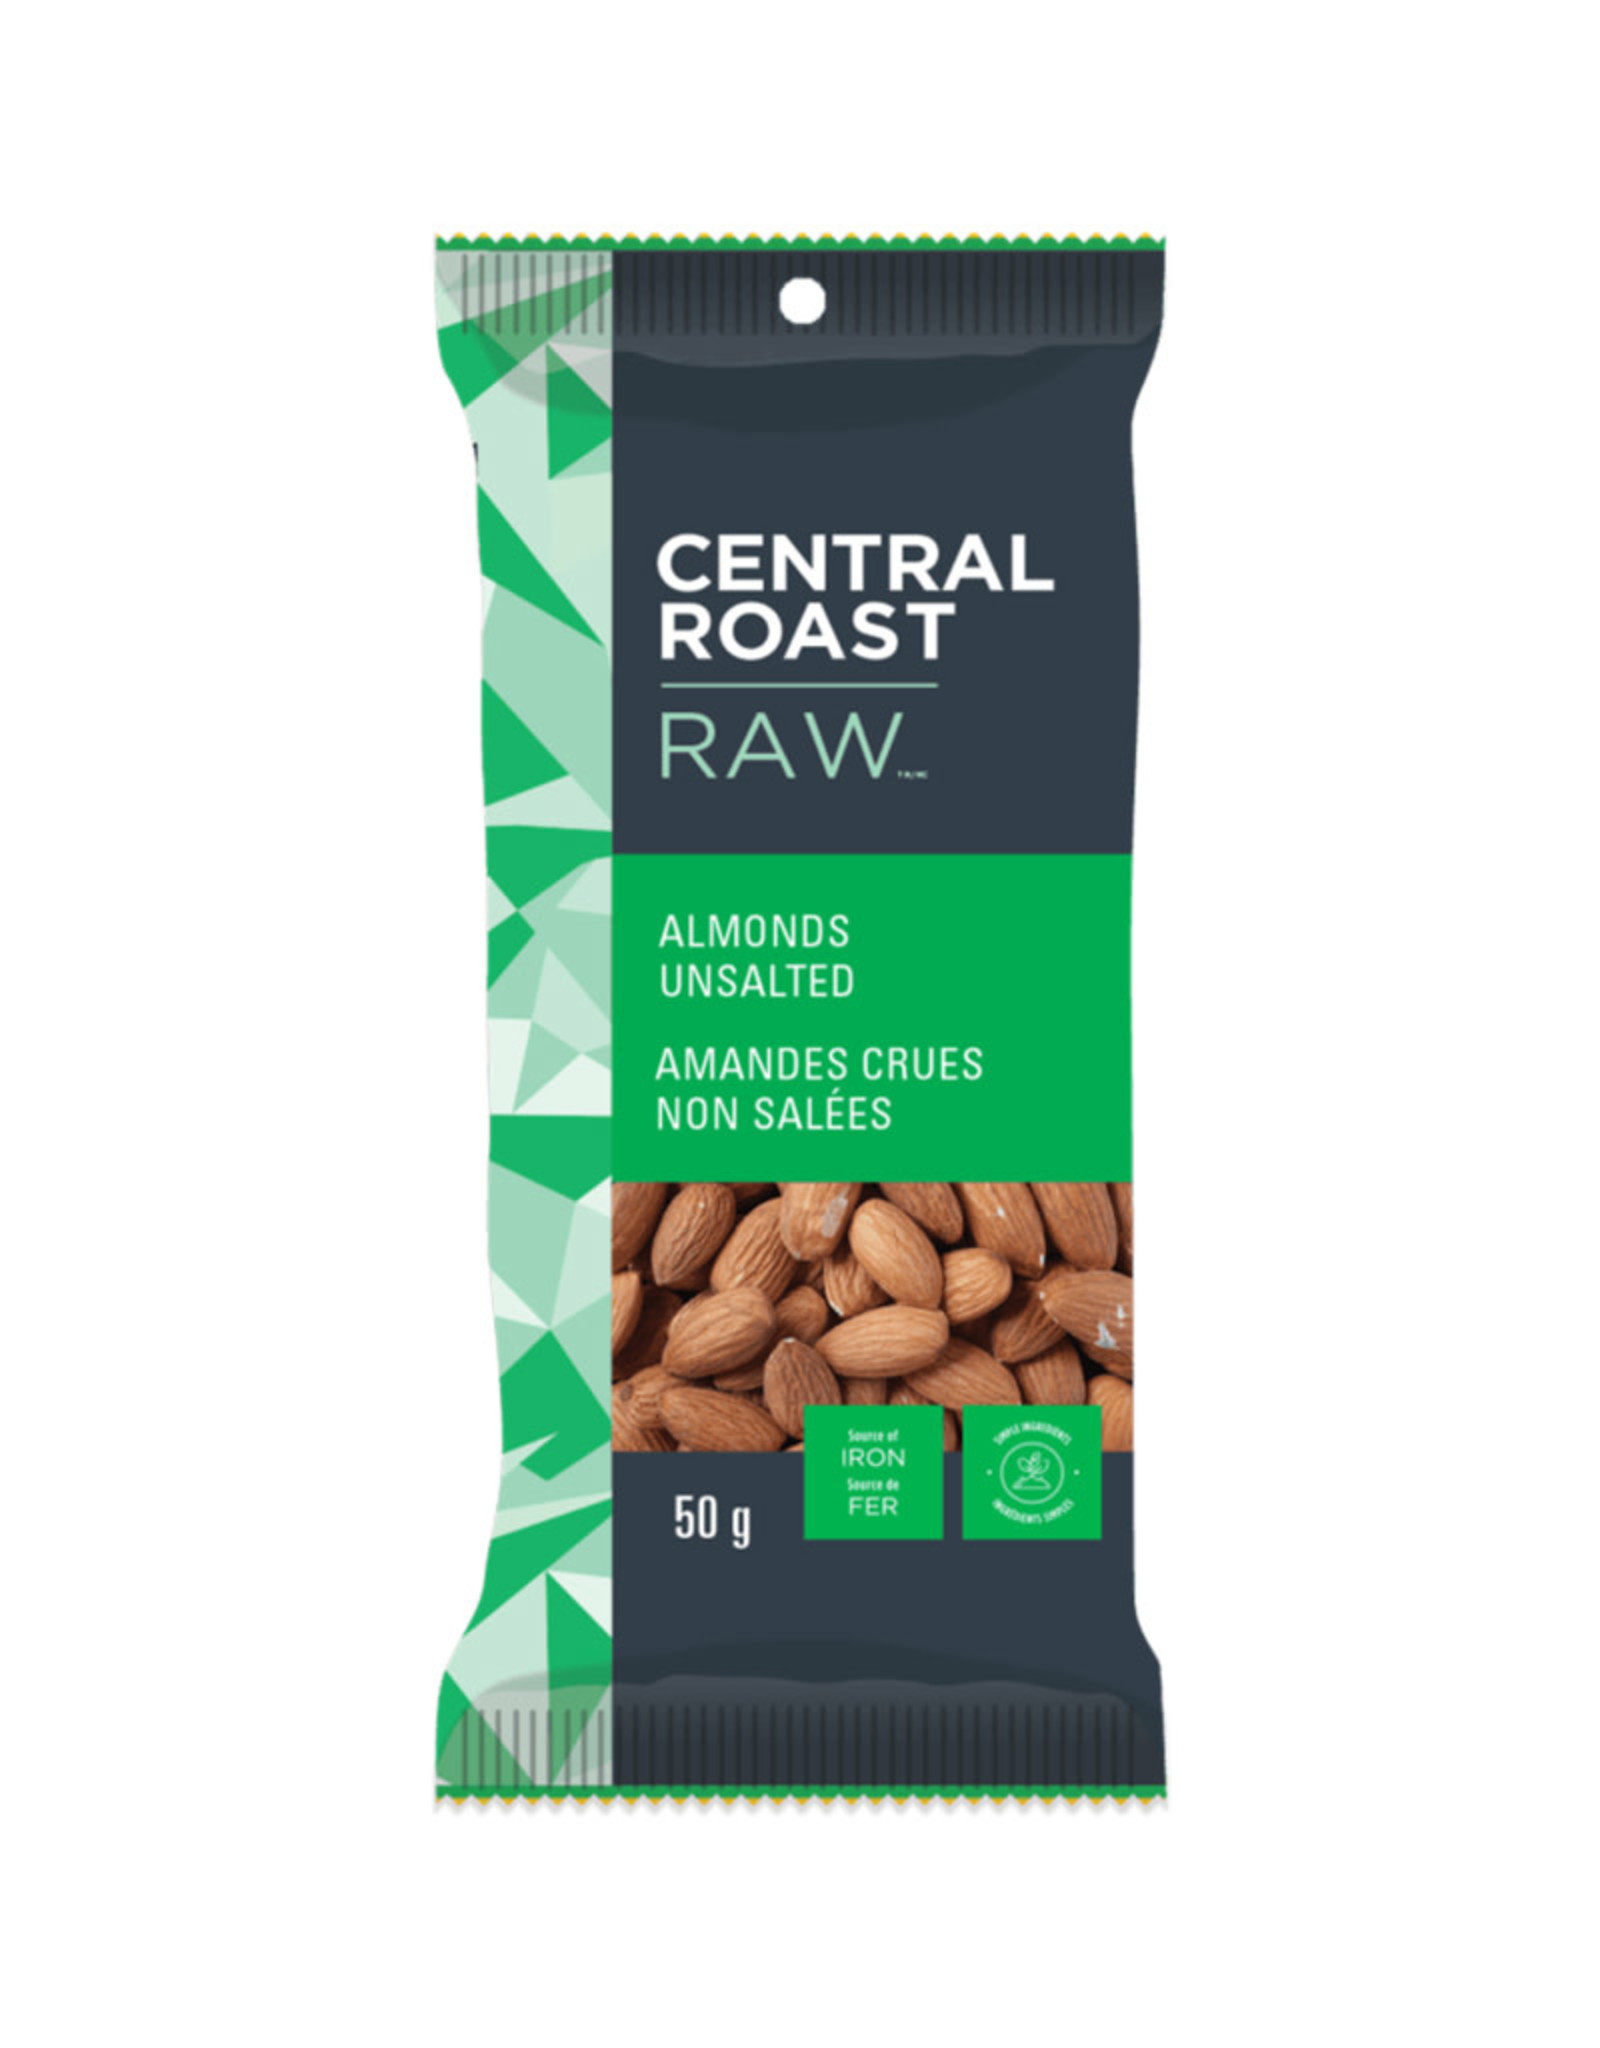 Central Roast Central Roast - Raw Almonds, Unsalted (50g)